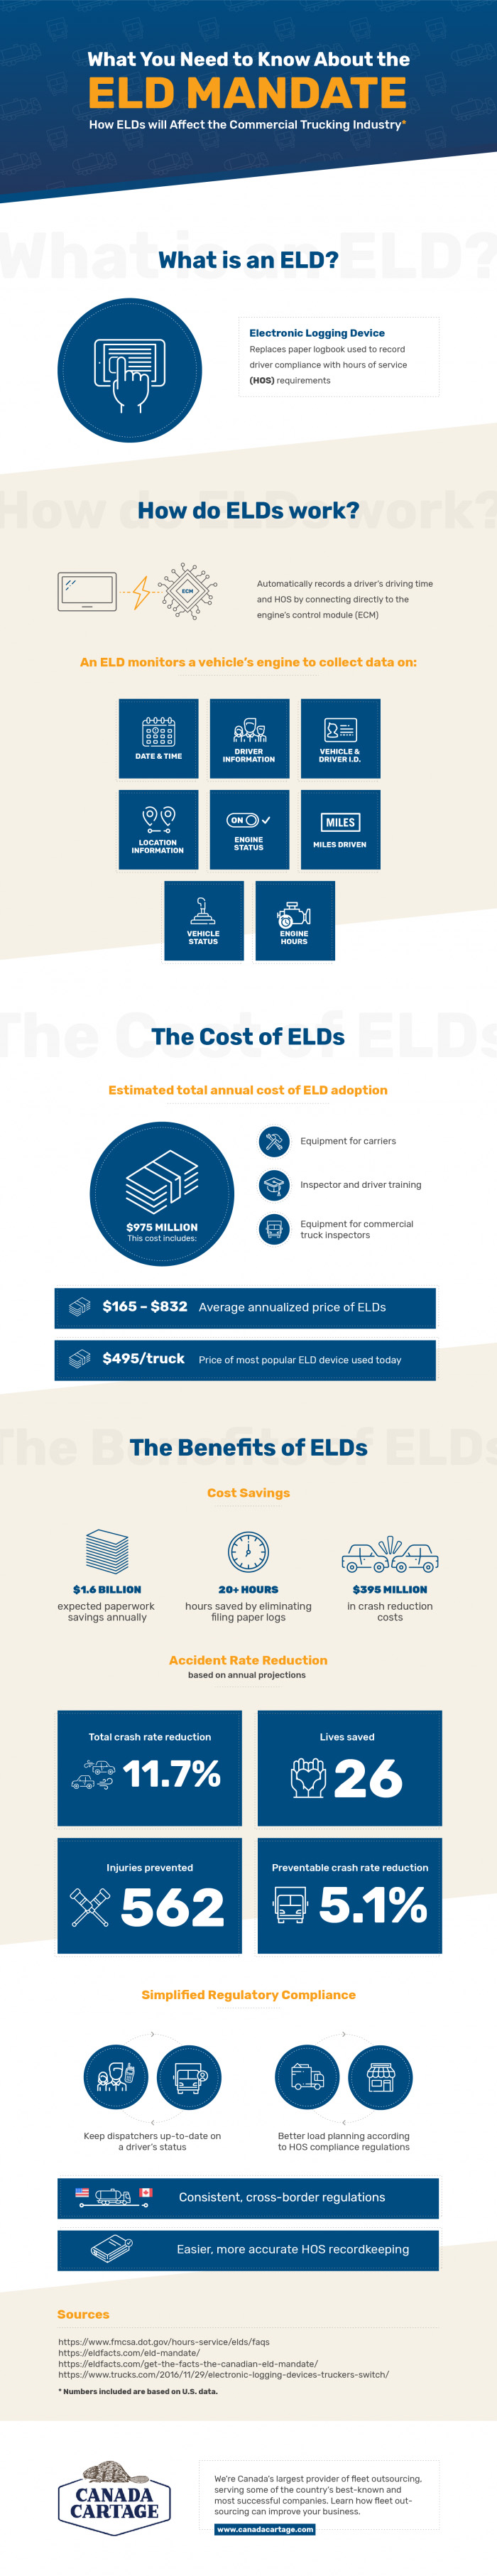 ELD Mandate Facts